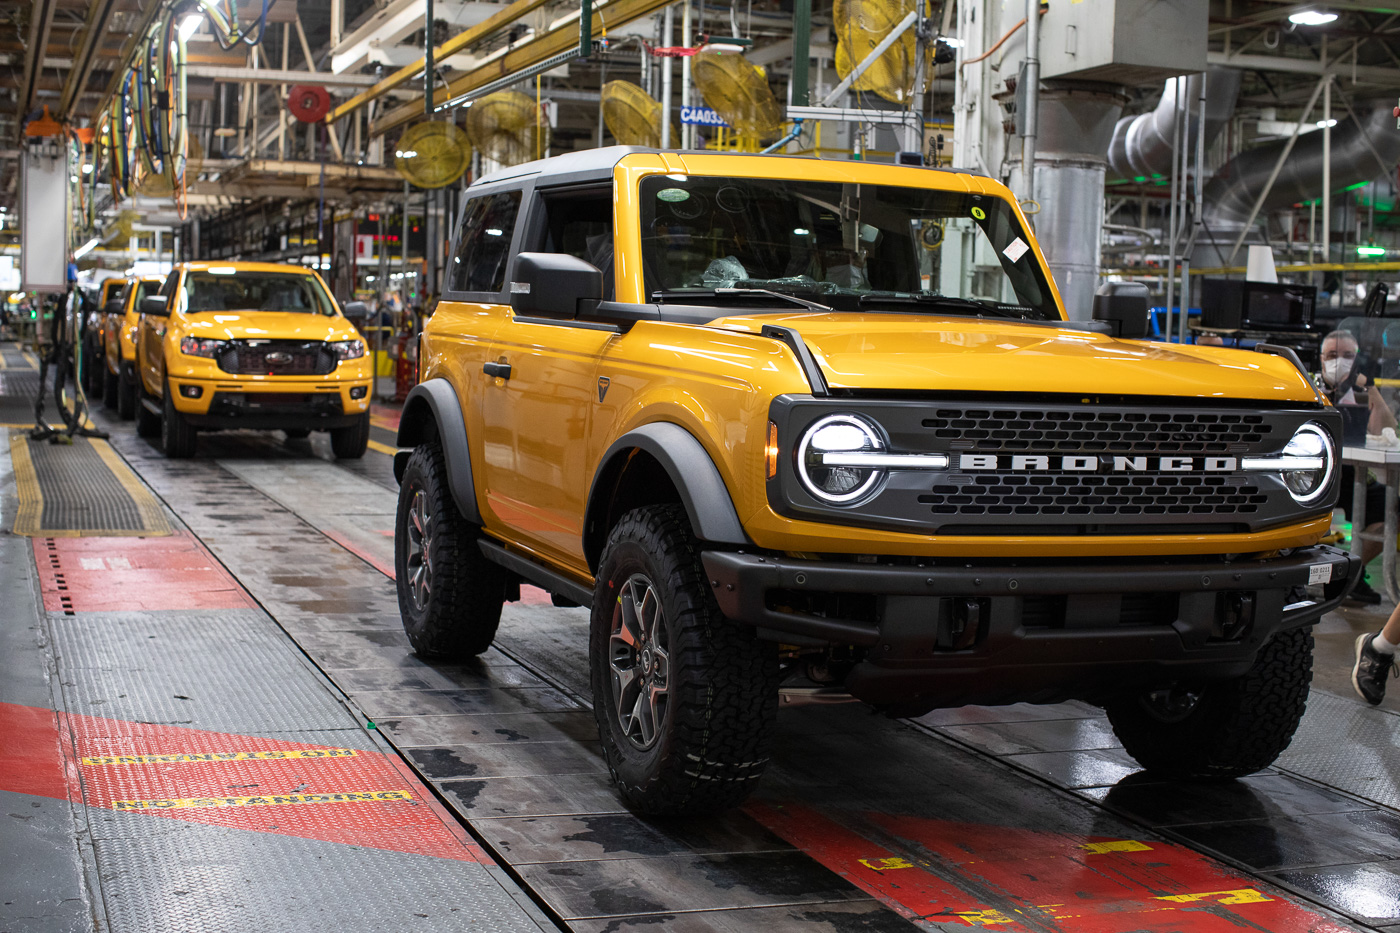 2021-bronco-production-michigan-assembly-plant-17.jpg